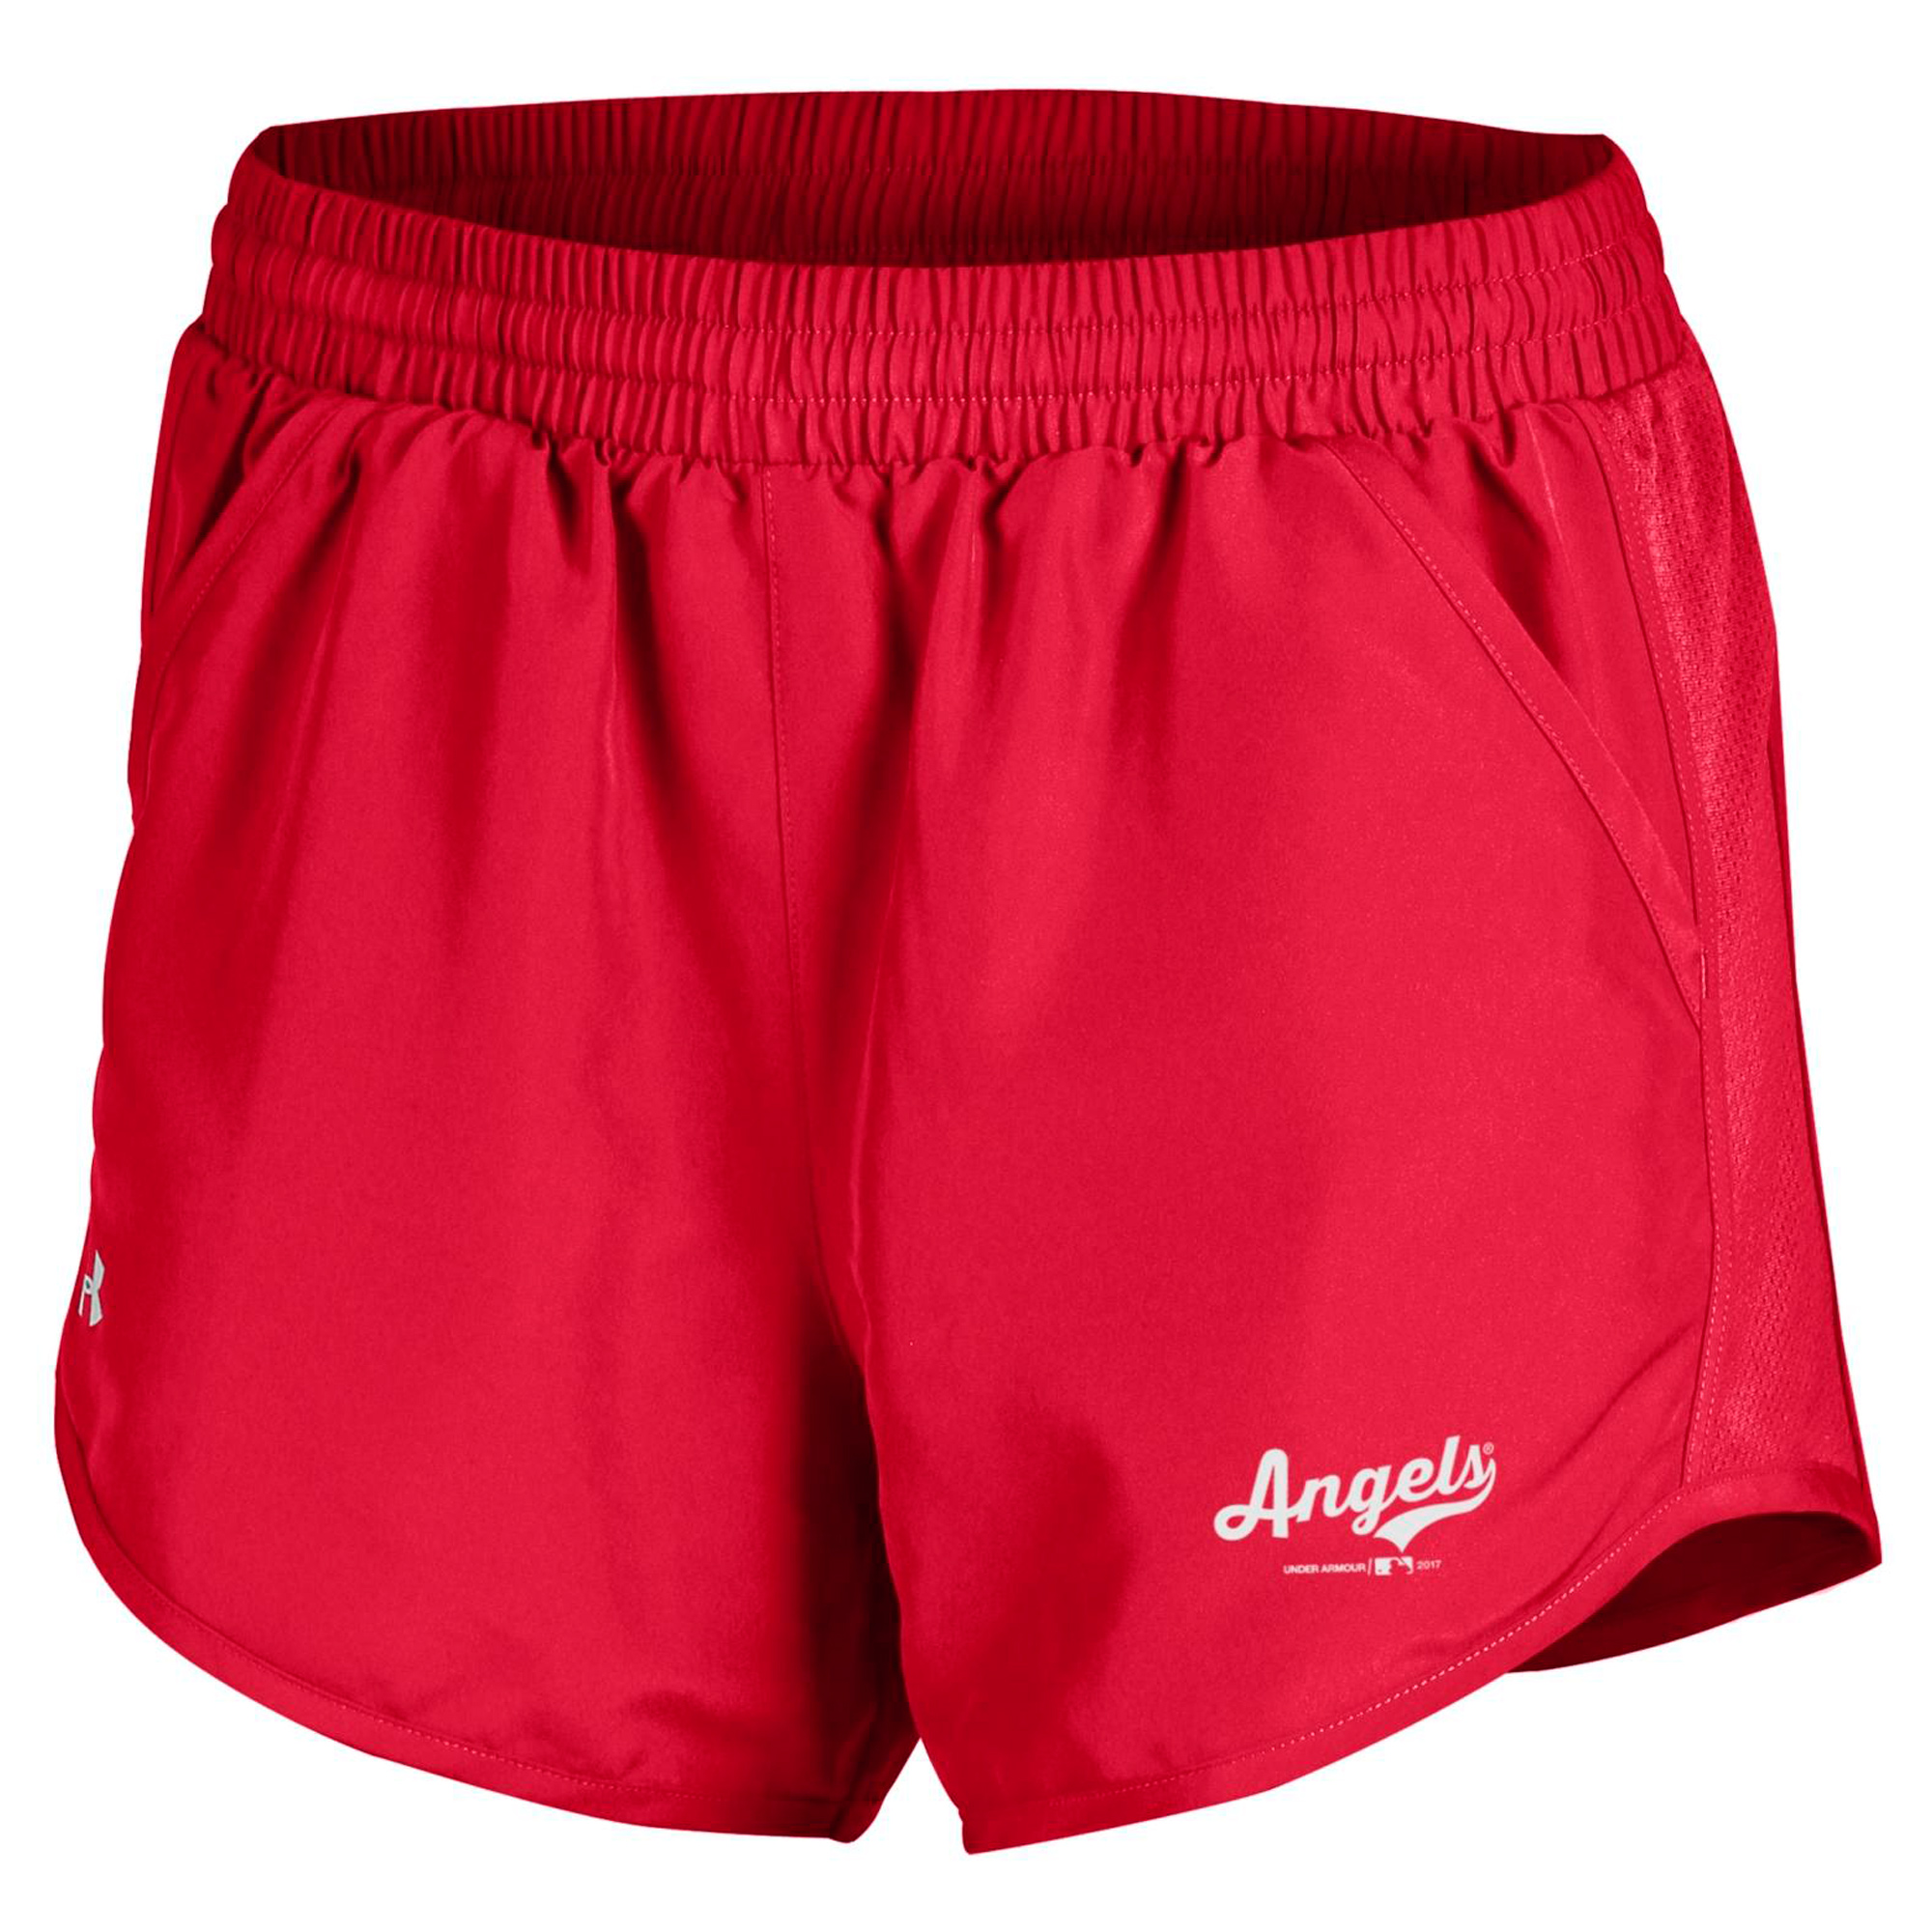 Los Angeles Angels Under Armour Women's Fly By Performance Running Shorts - Red